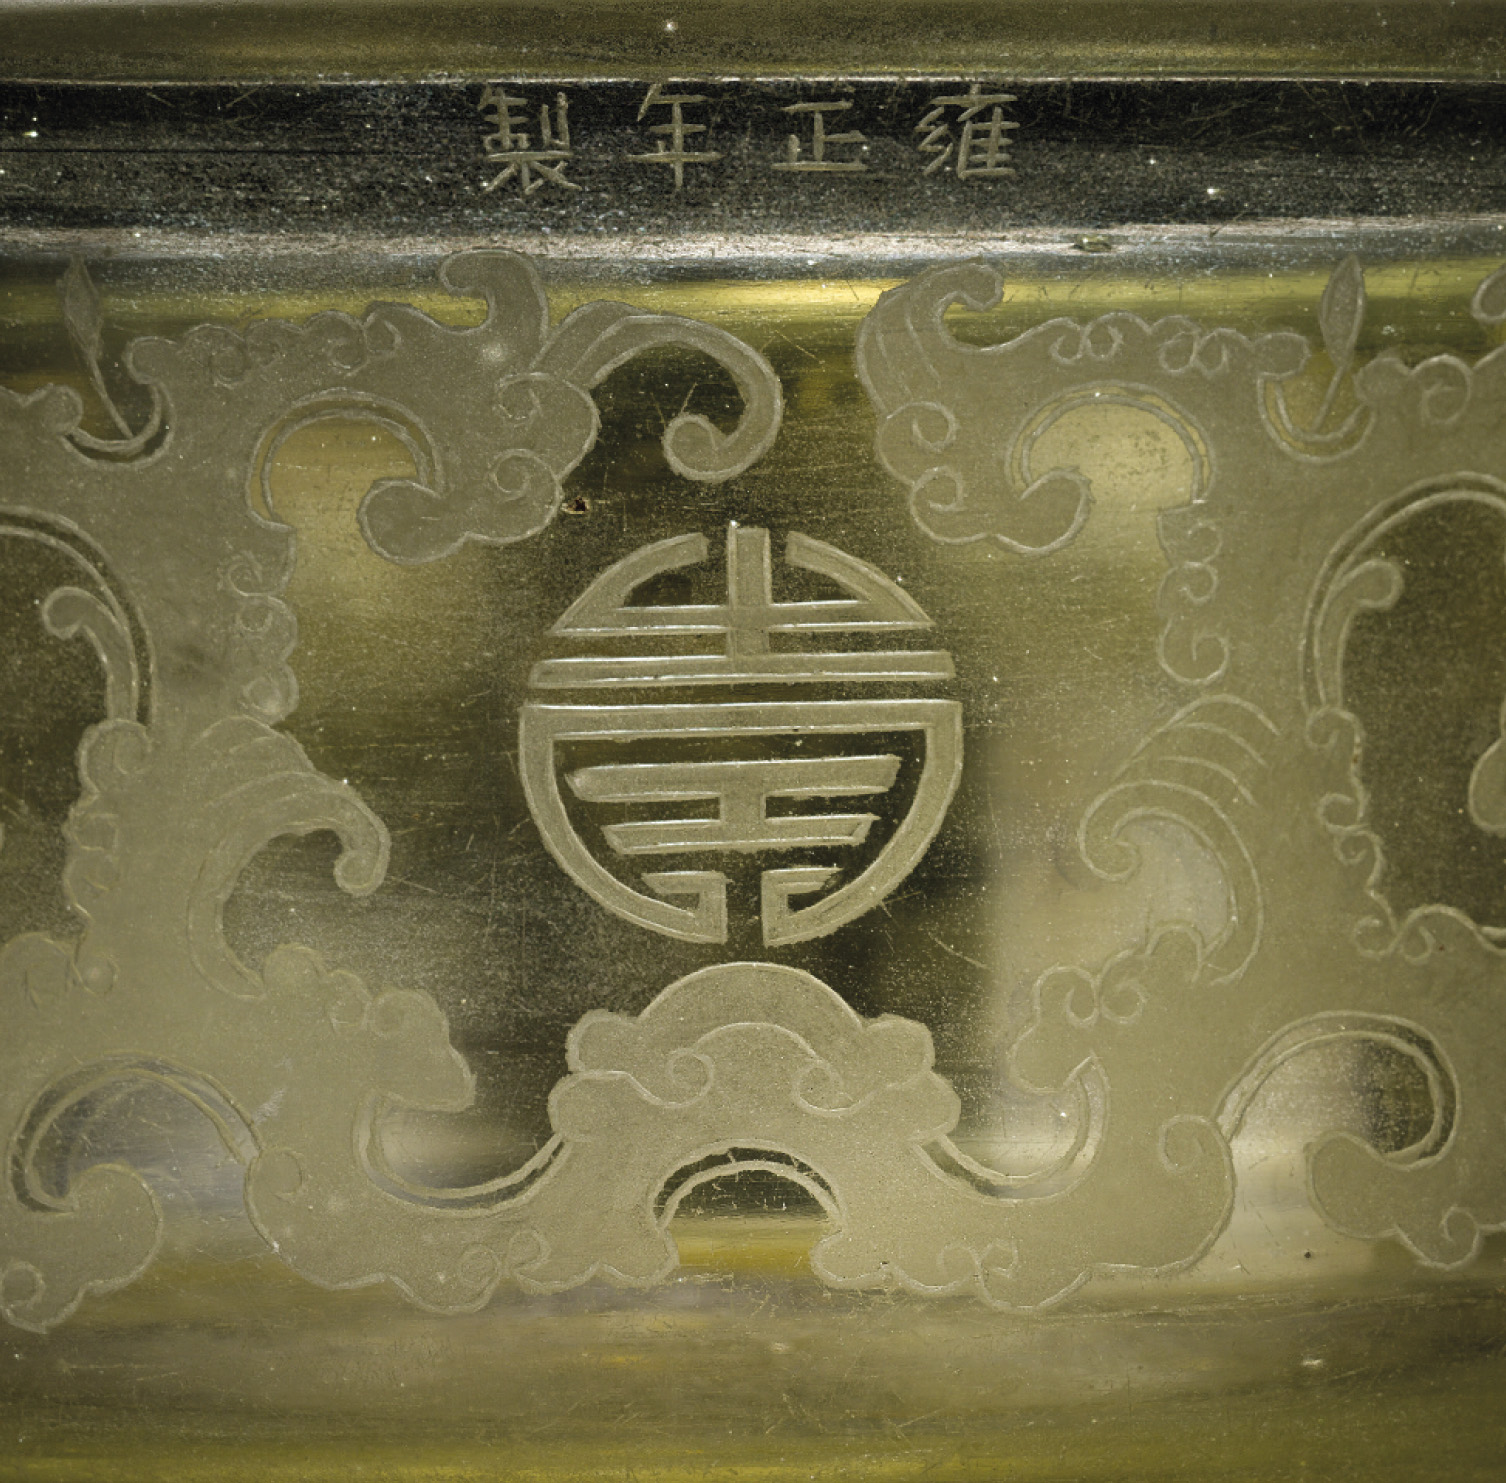 A VERY RARE ENGRAVED IMPERIAL YELLOW GLASS BOWL